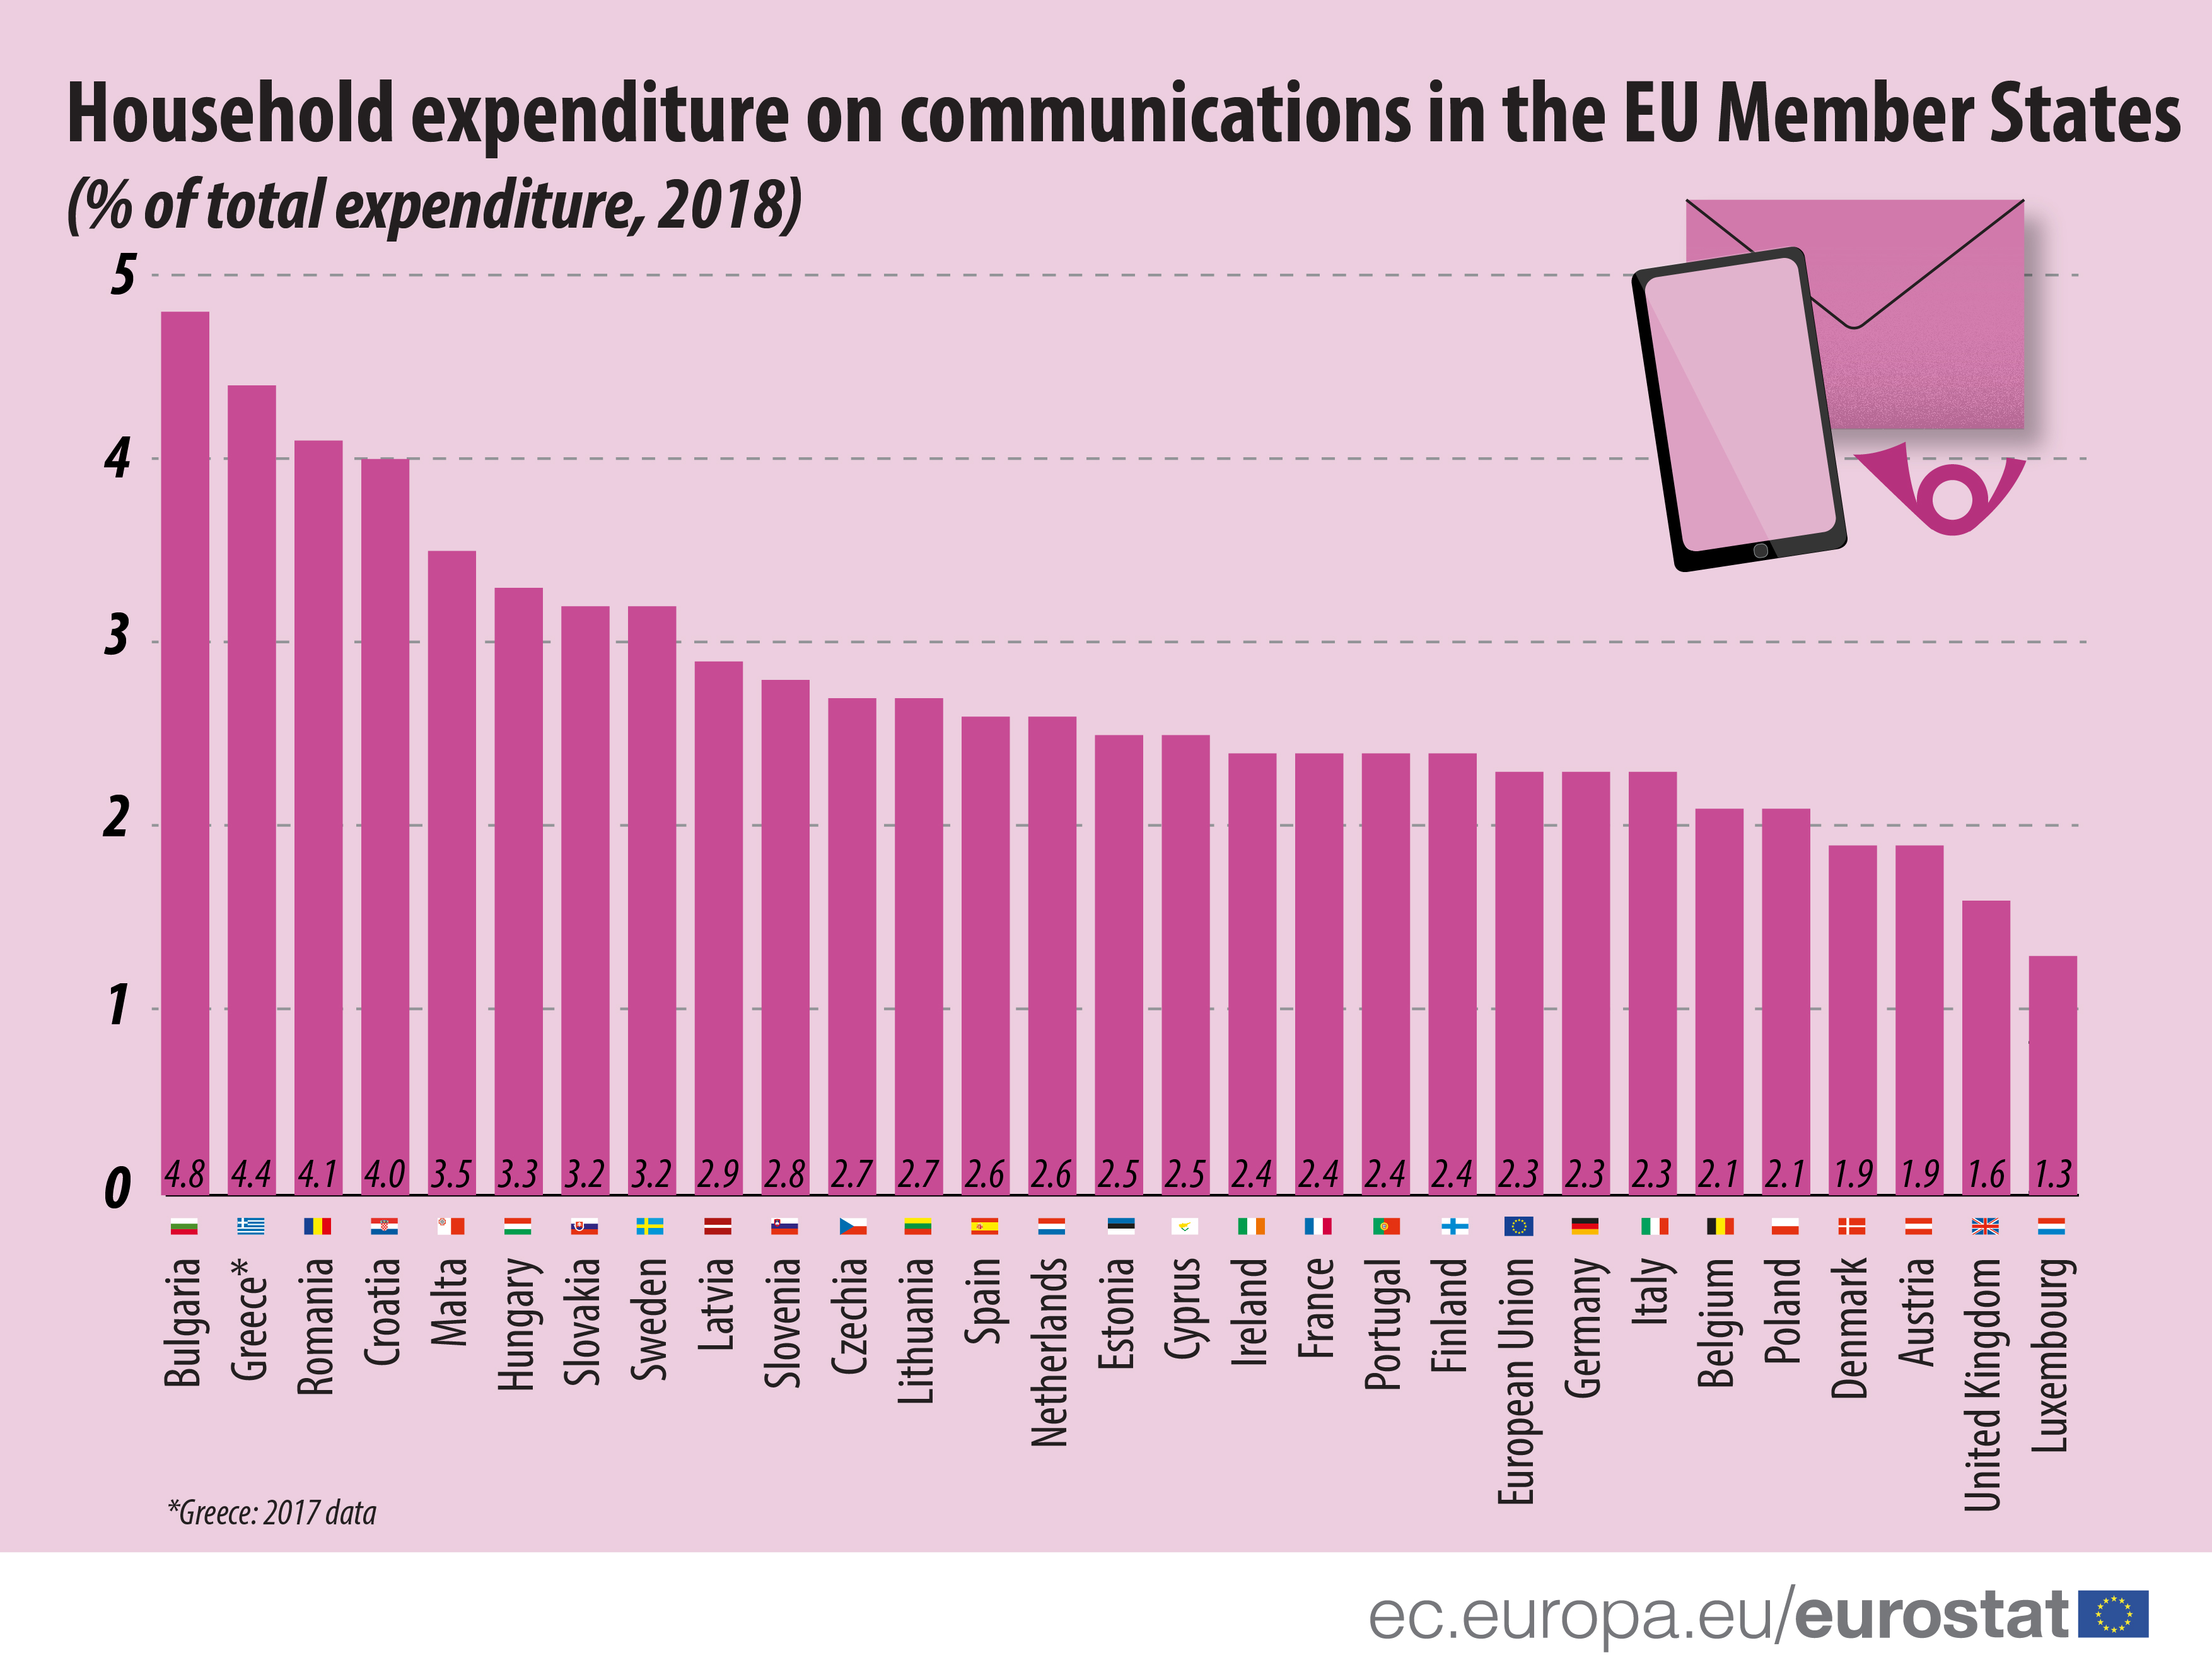 Household expenditure on communications, 2018